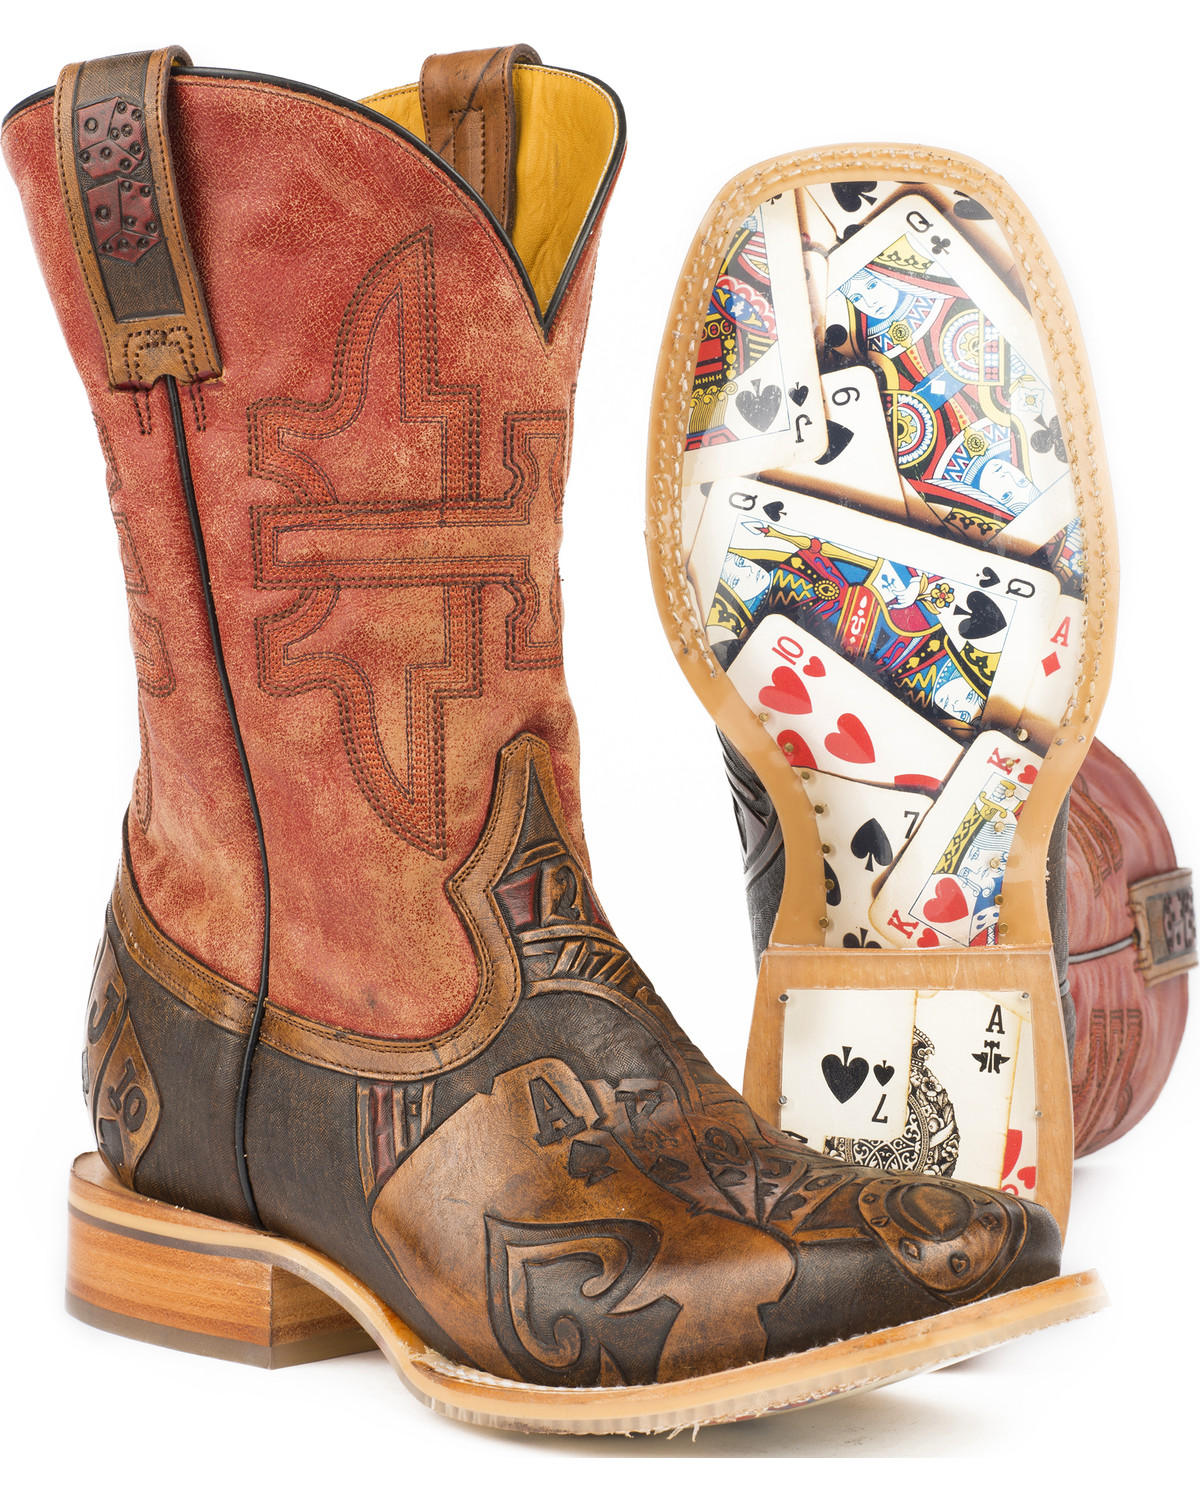 Western boots should fit from the heel to the ball of the foot. The widest part of your foot should be in the widest part of the outsole, regardless of the toe shape. With leather boots, remember that as you continue to wear the boots they will stretch slightly and soften over time. They should fit snug across the instep when they are new.